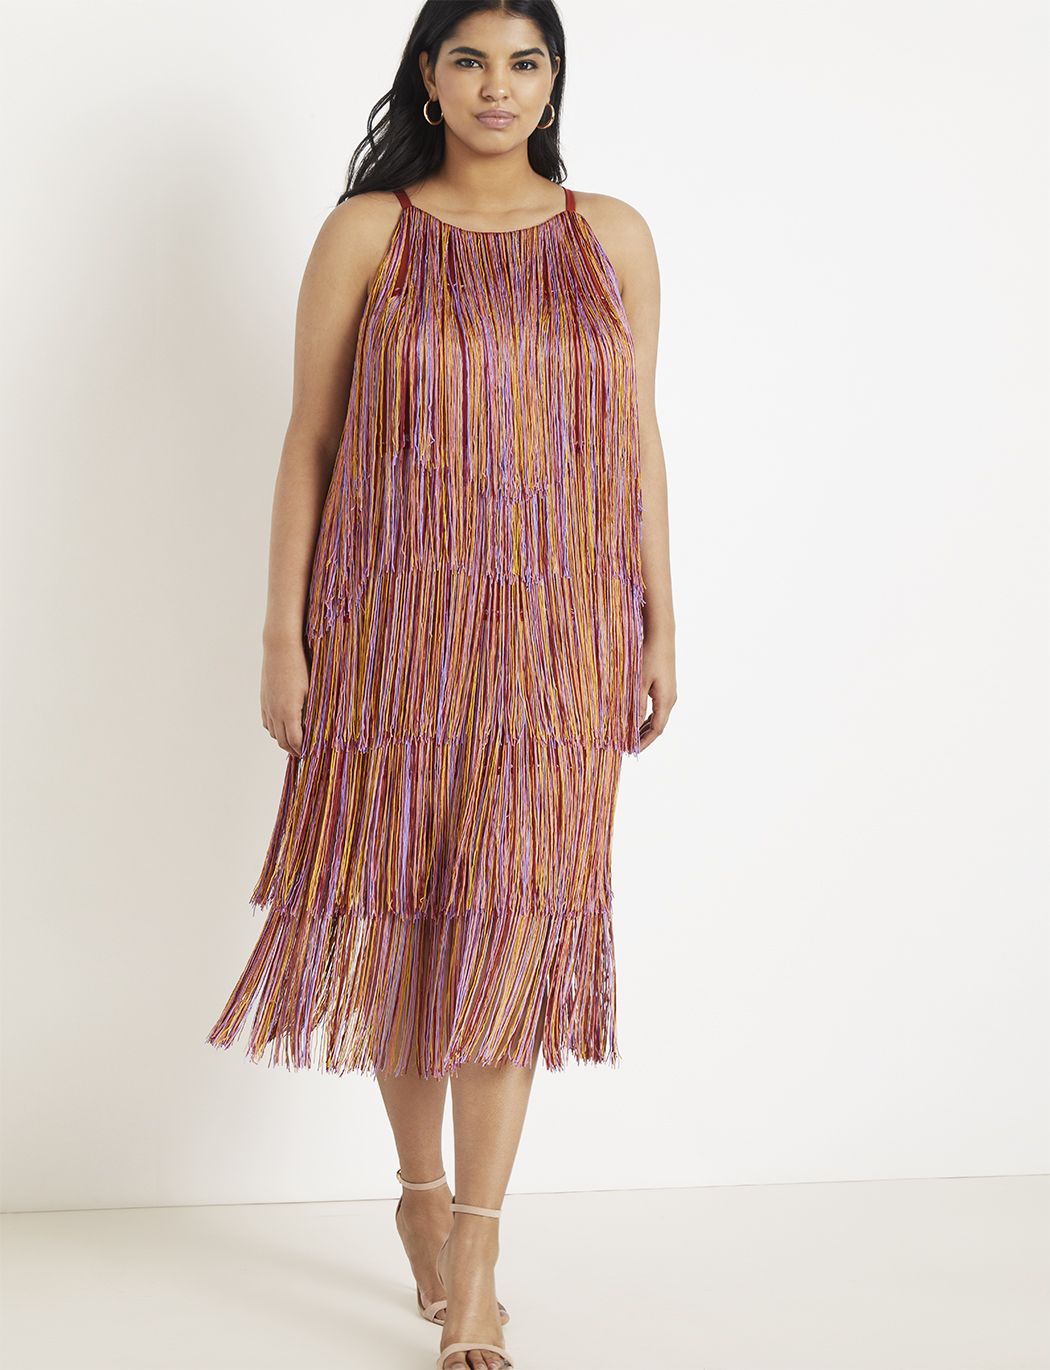 Fringe Midi Dress | Women\'s Plus Size Dresses | ELOQUII